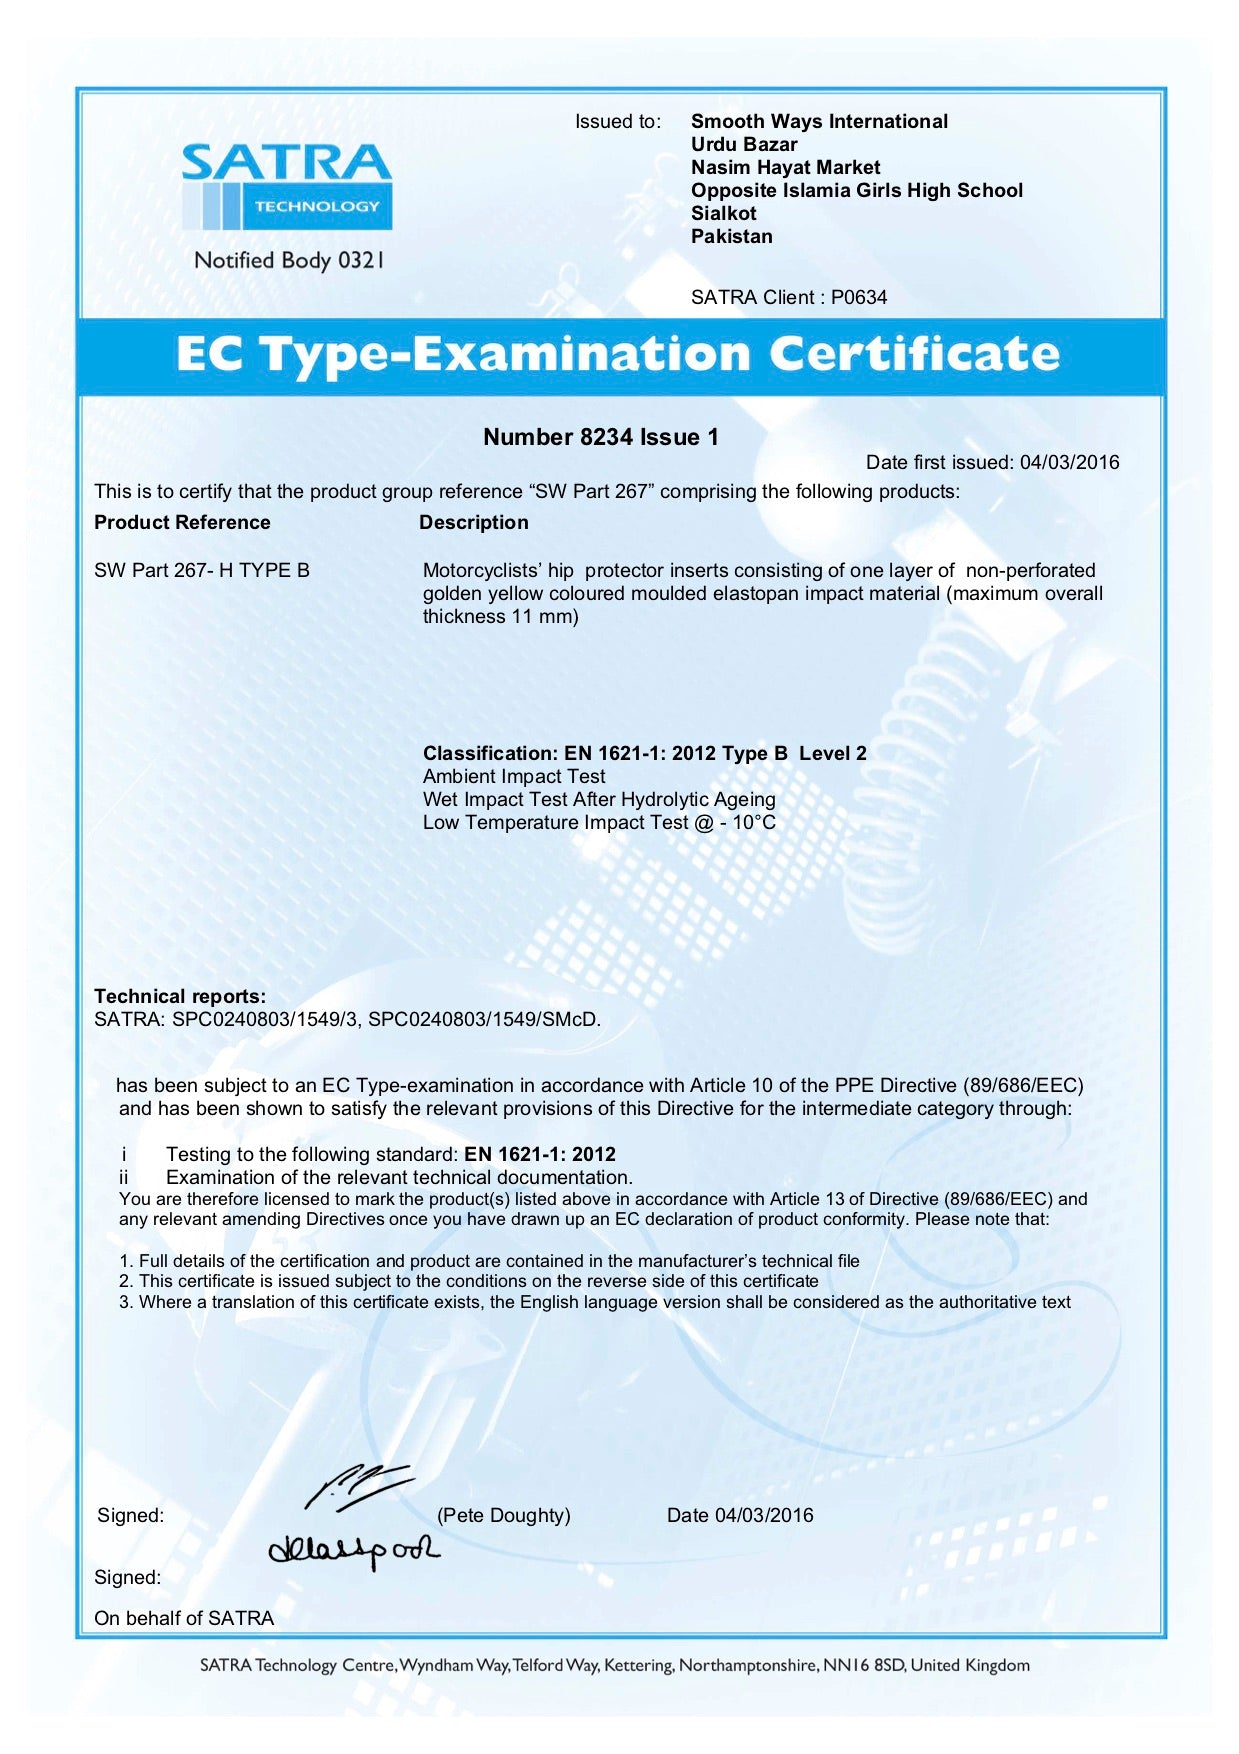 An examination certificate from a leading motorcycle safety body which confirms approval of the safety standards of the motorbike clothing when testing for hip protection.